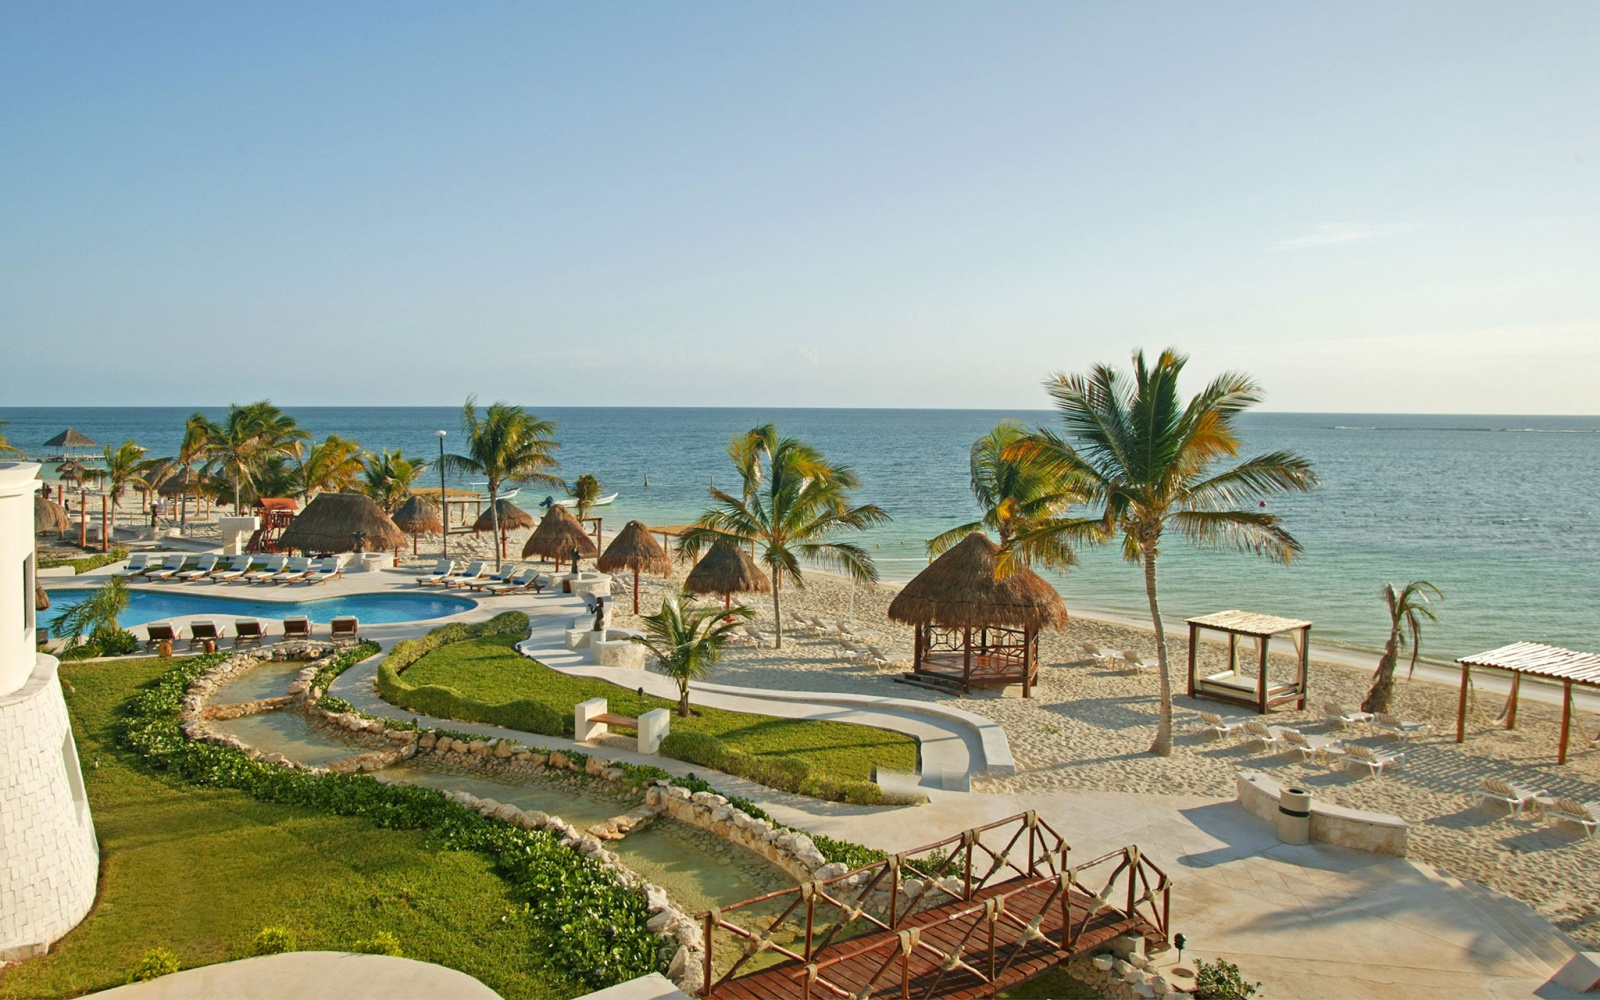 beachside at Azul Beach Hotel in Riviera Maya, Mexico